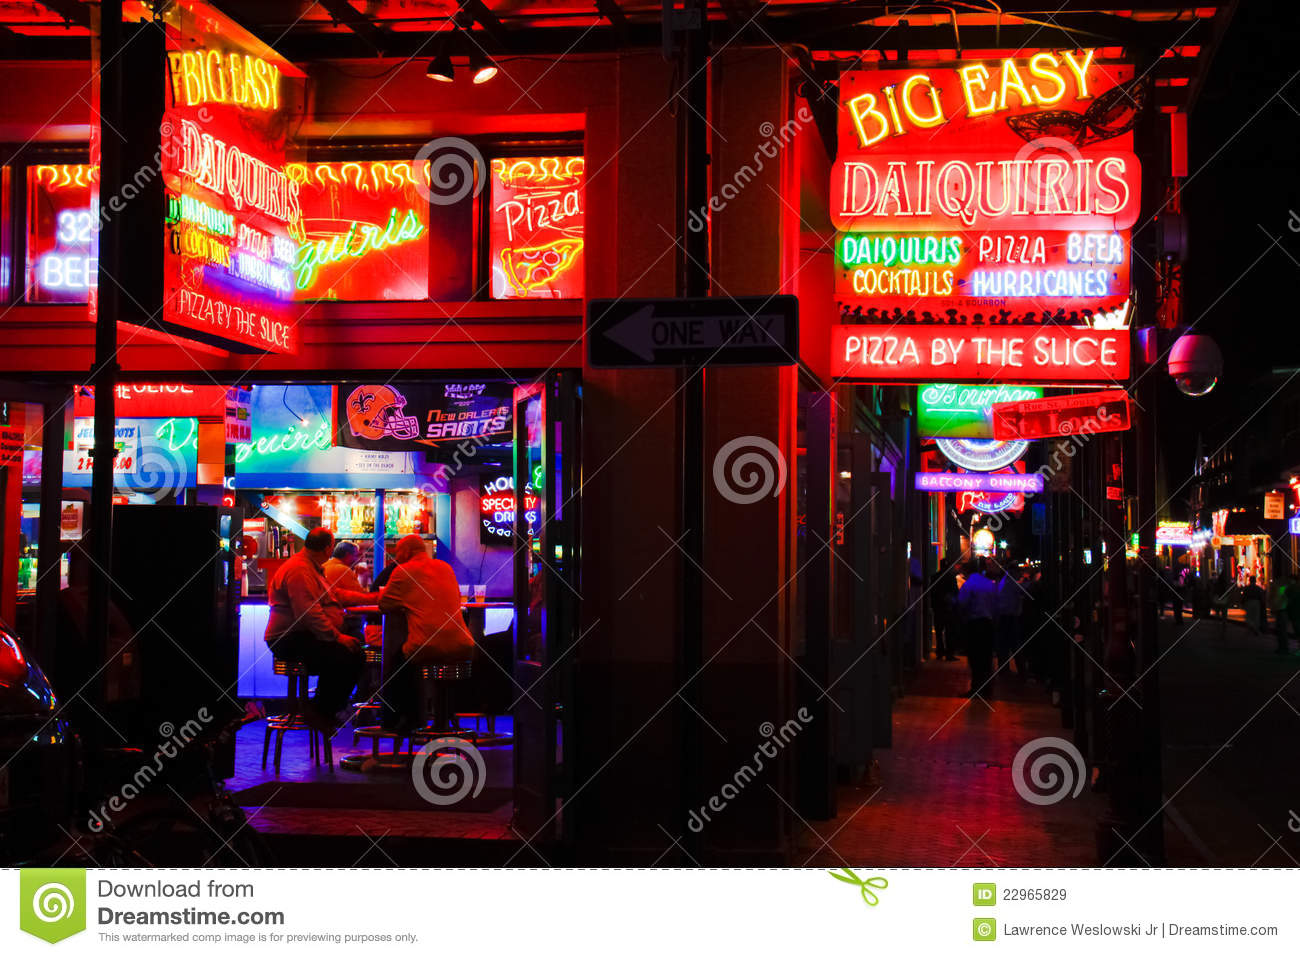 New Orleans Bourbon Street Food and Drink